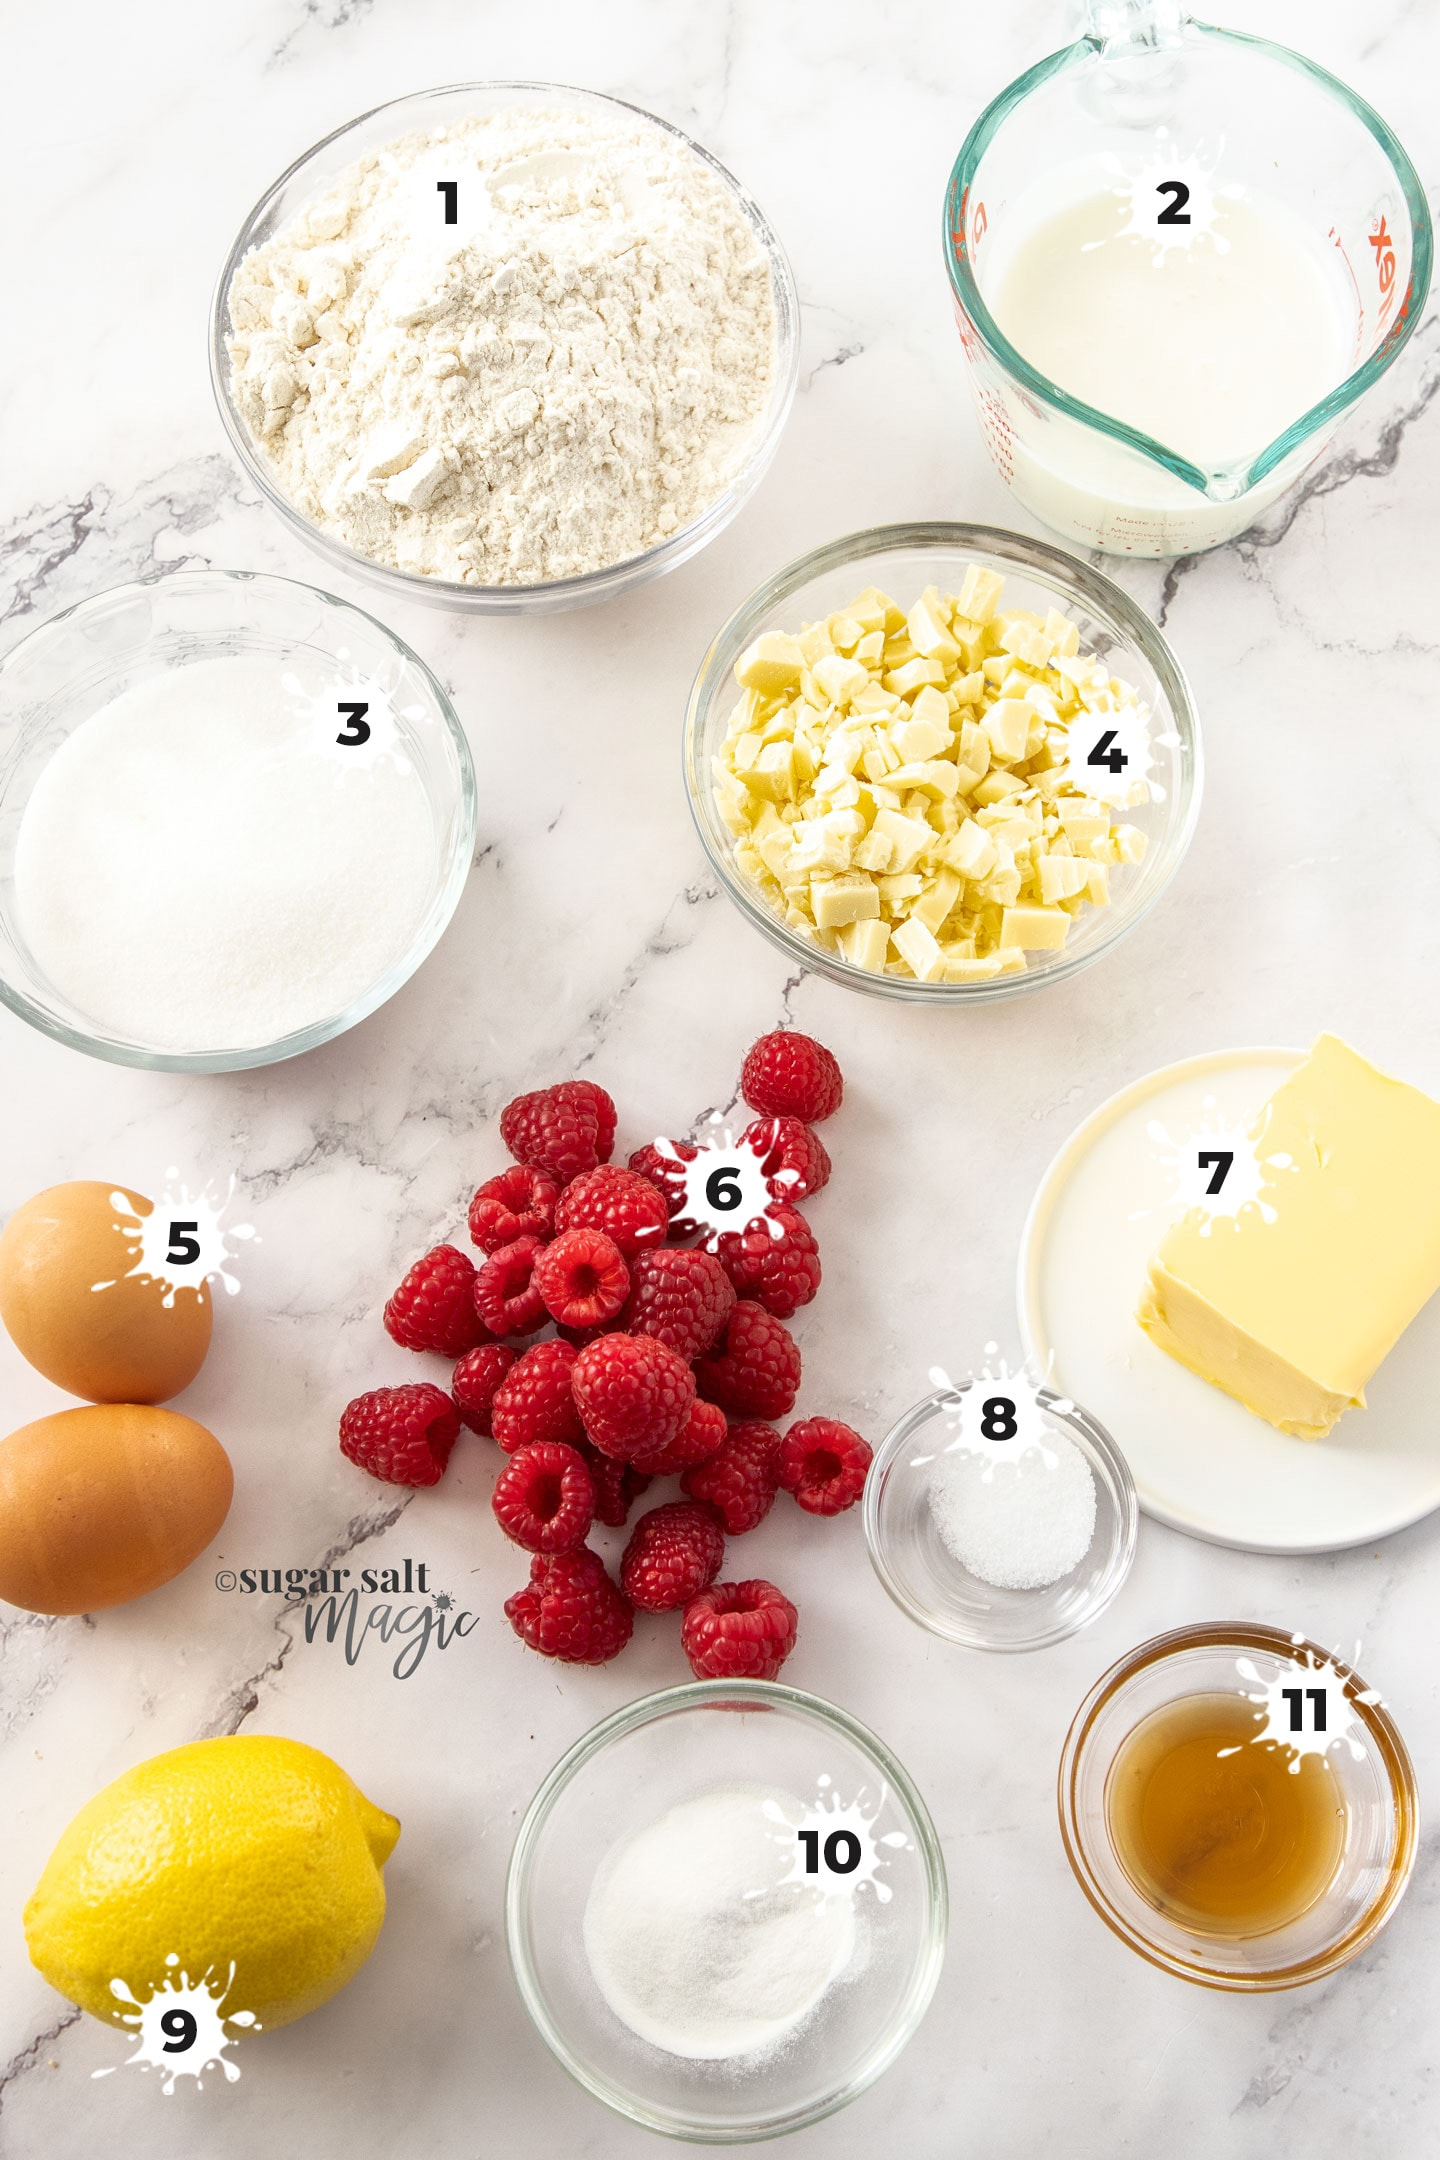 Ingredients for raspberry white chocolate muffins on a marble benchtop.